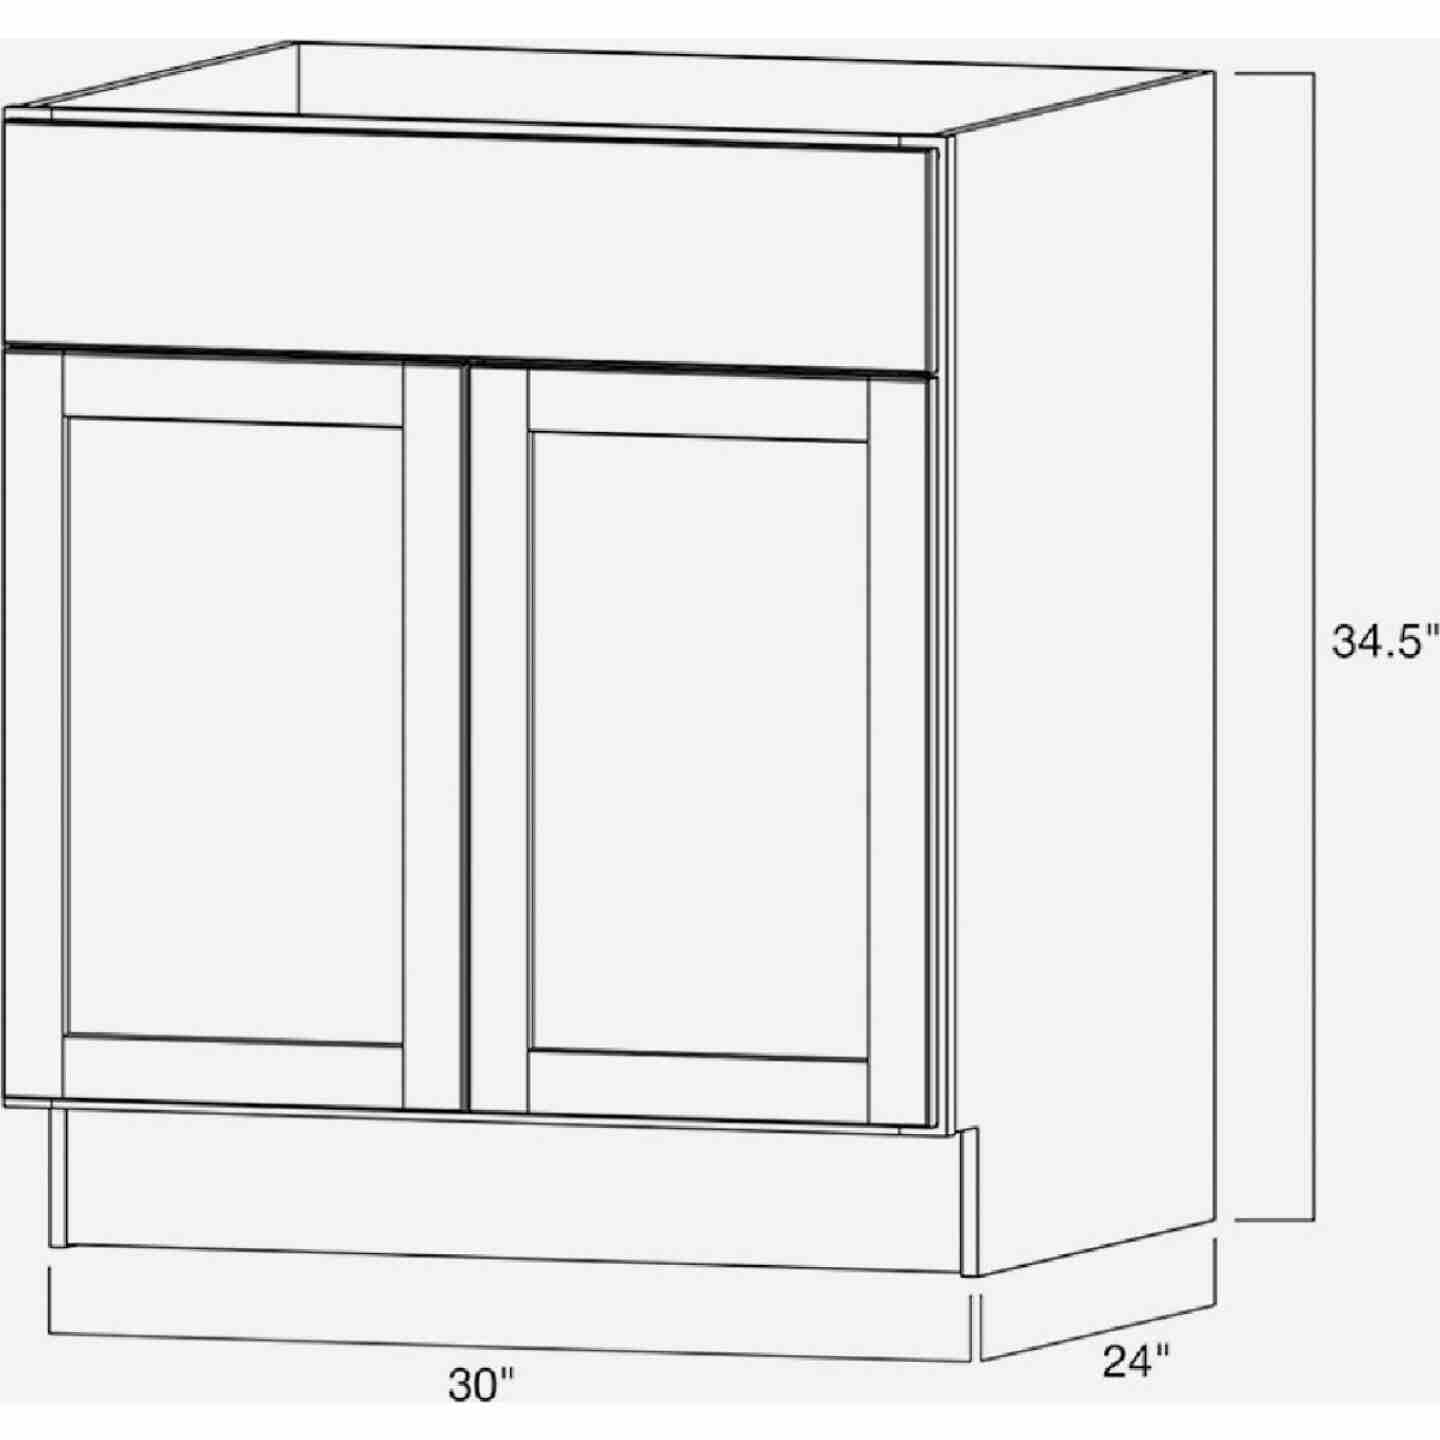 Continental Cabinets Andover Shaker 30 In. W x 34 In. H x 24 In. D White Thermofoil Base Kitchen Cabinet Image 4